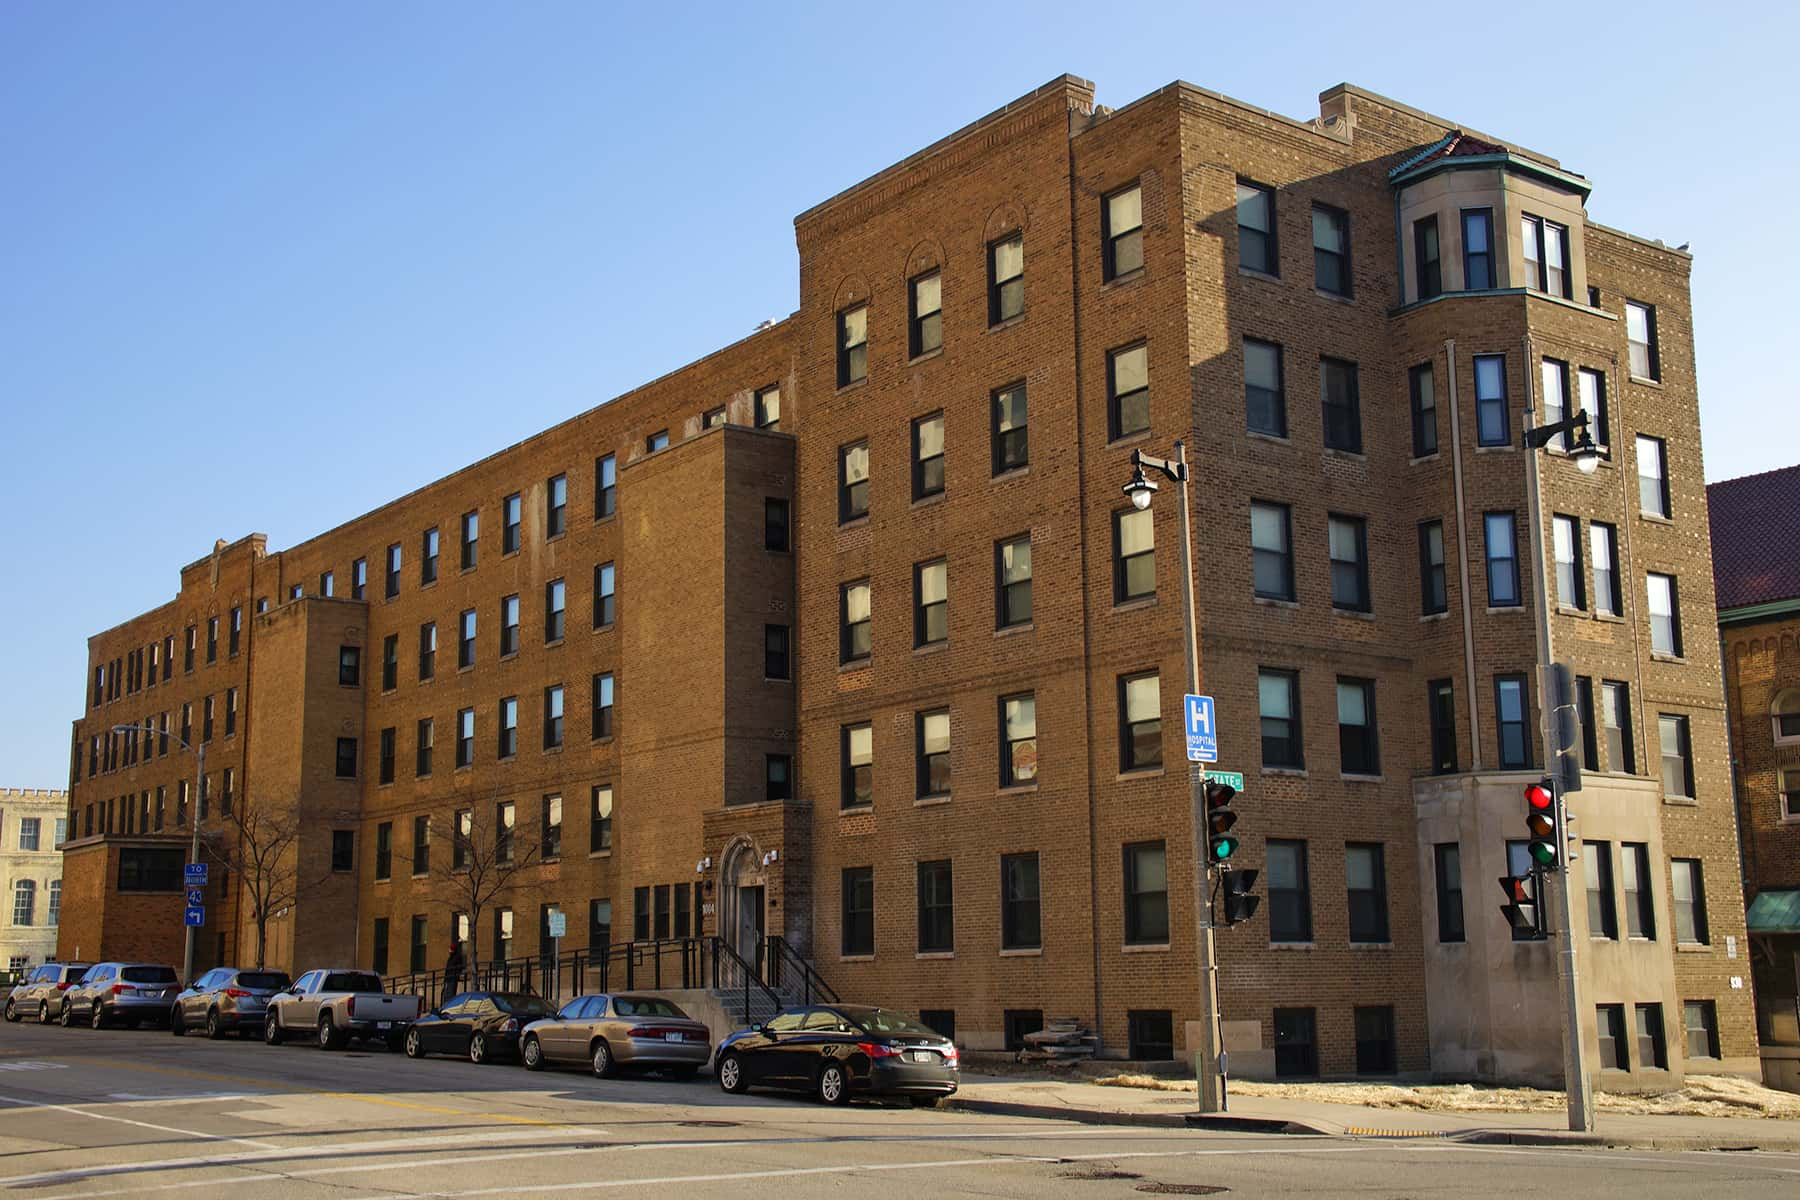 Former St Anthony S Hospital Transformed Into Apartments And Resource Center For The Homeless